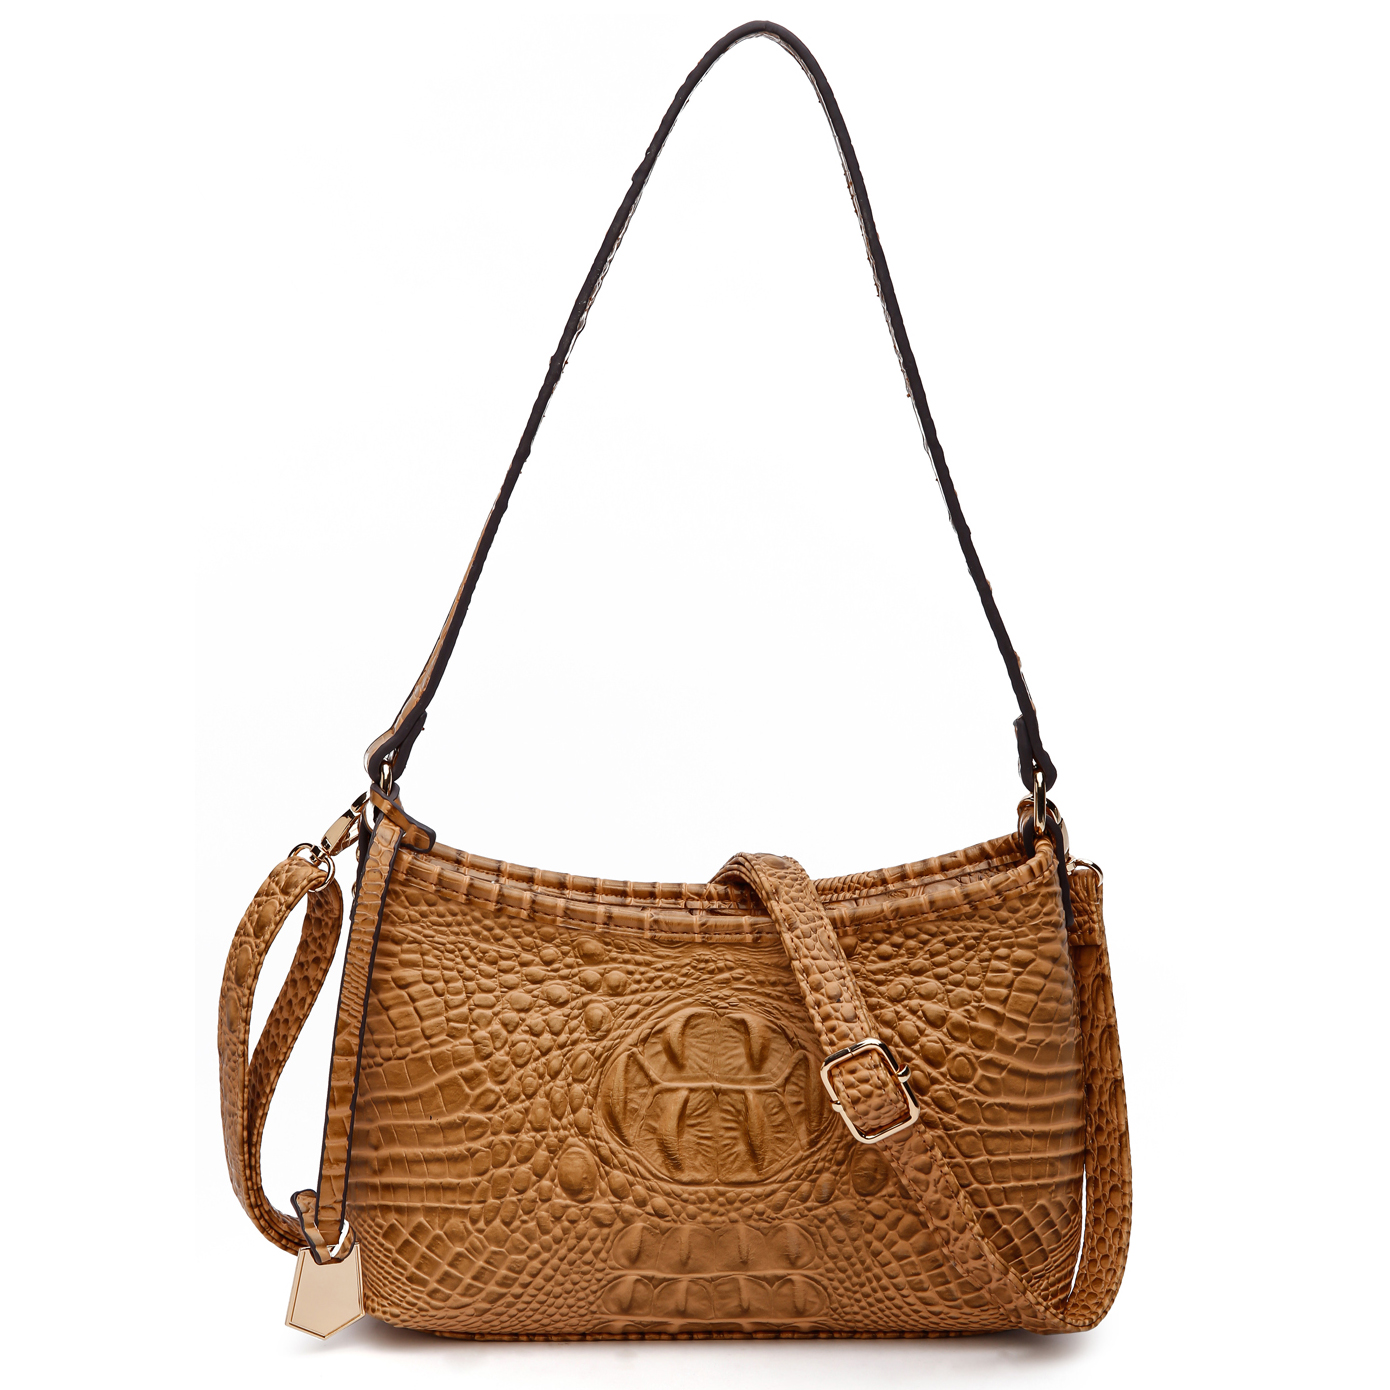 MKF Collection Lisbeth Shoulder Bag Cross body Bag by Mia K. Farrow